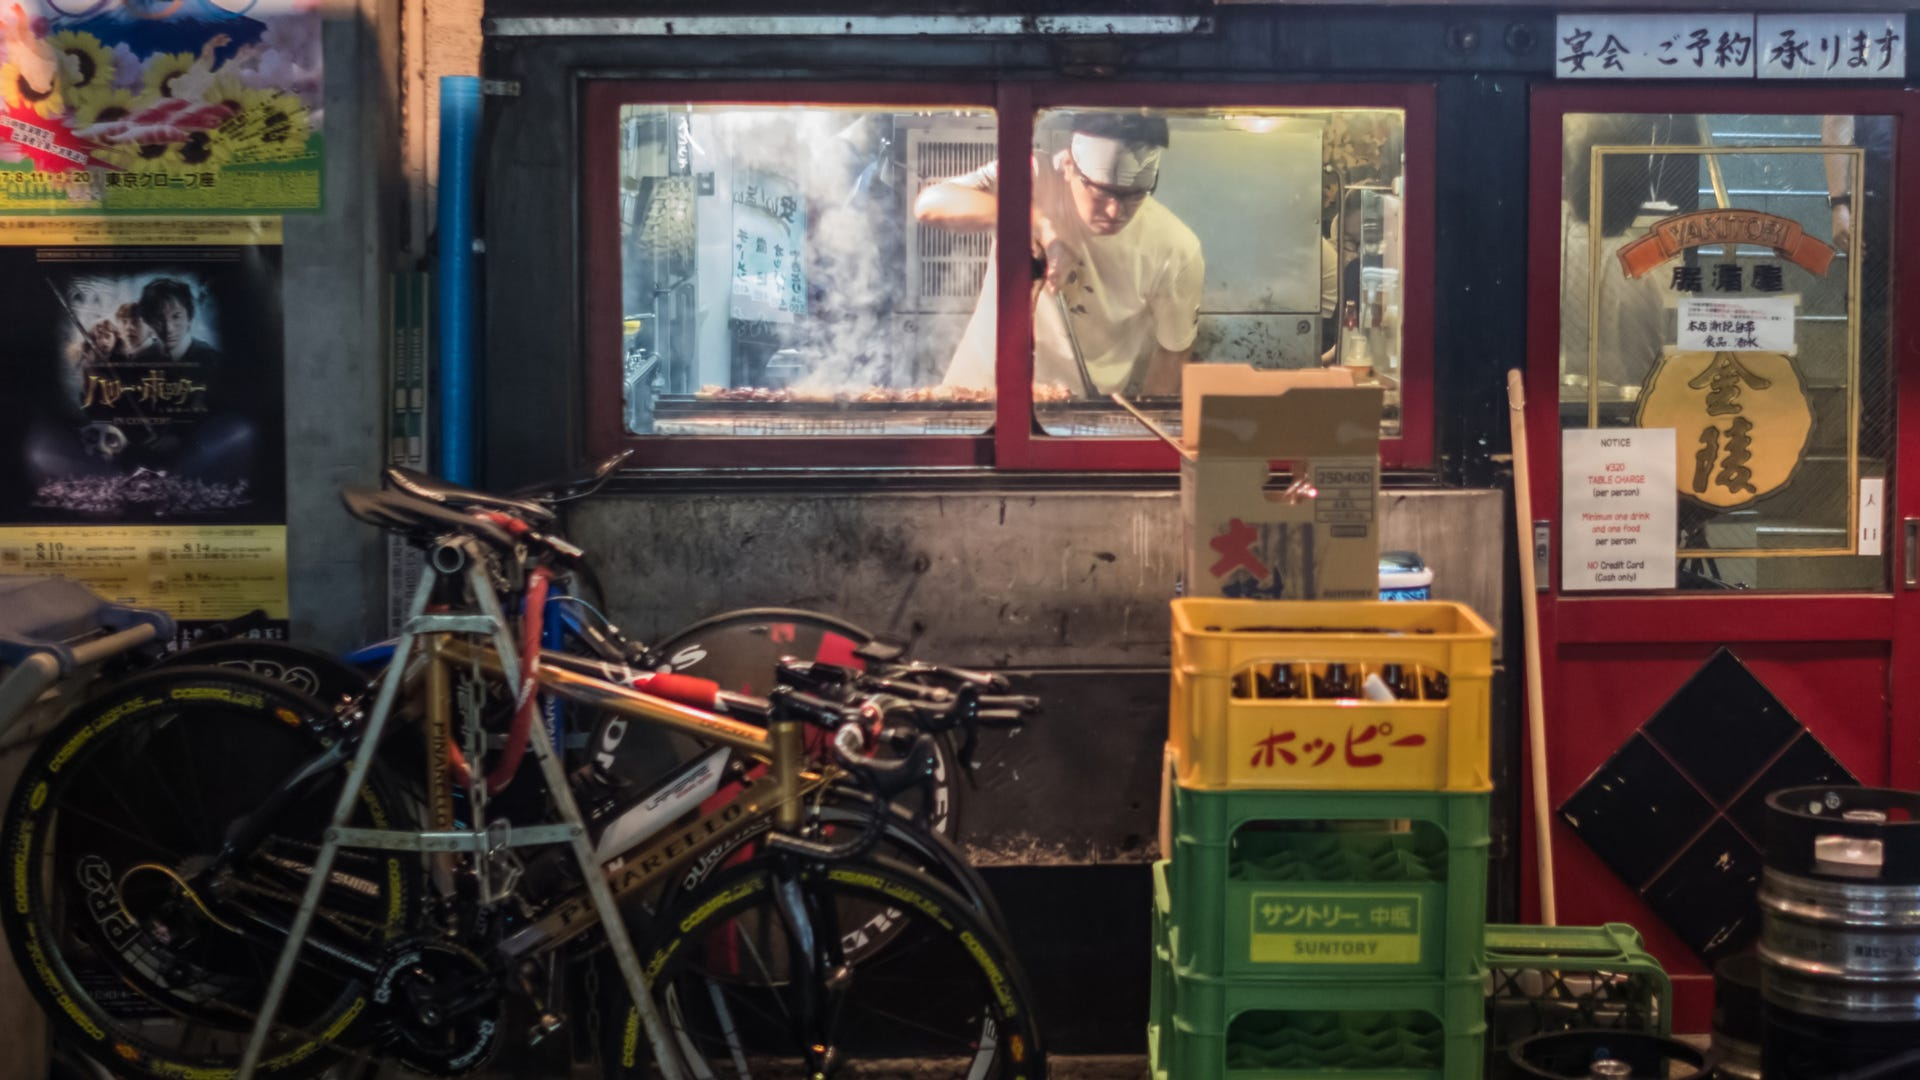 Chef cooking in small eateries, in Yurakucho Alley near a Japanese railway.